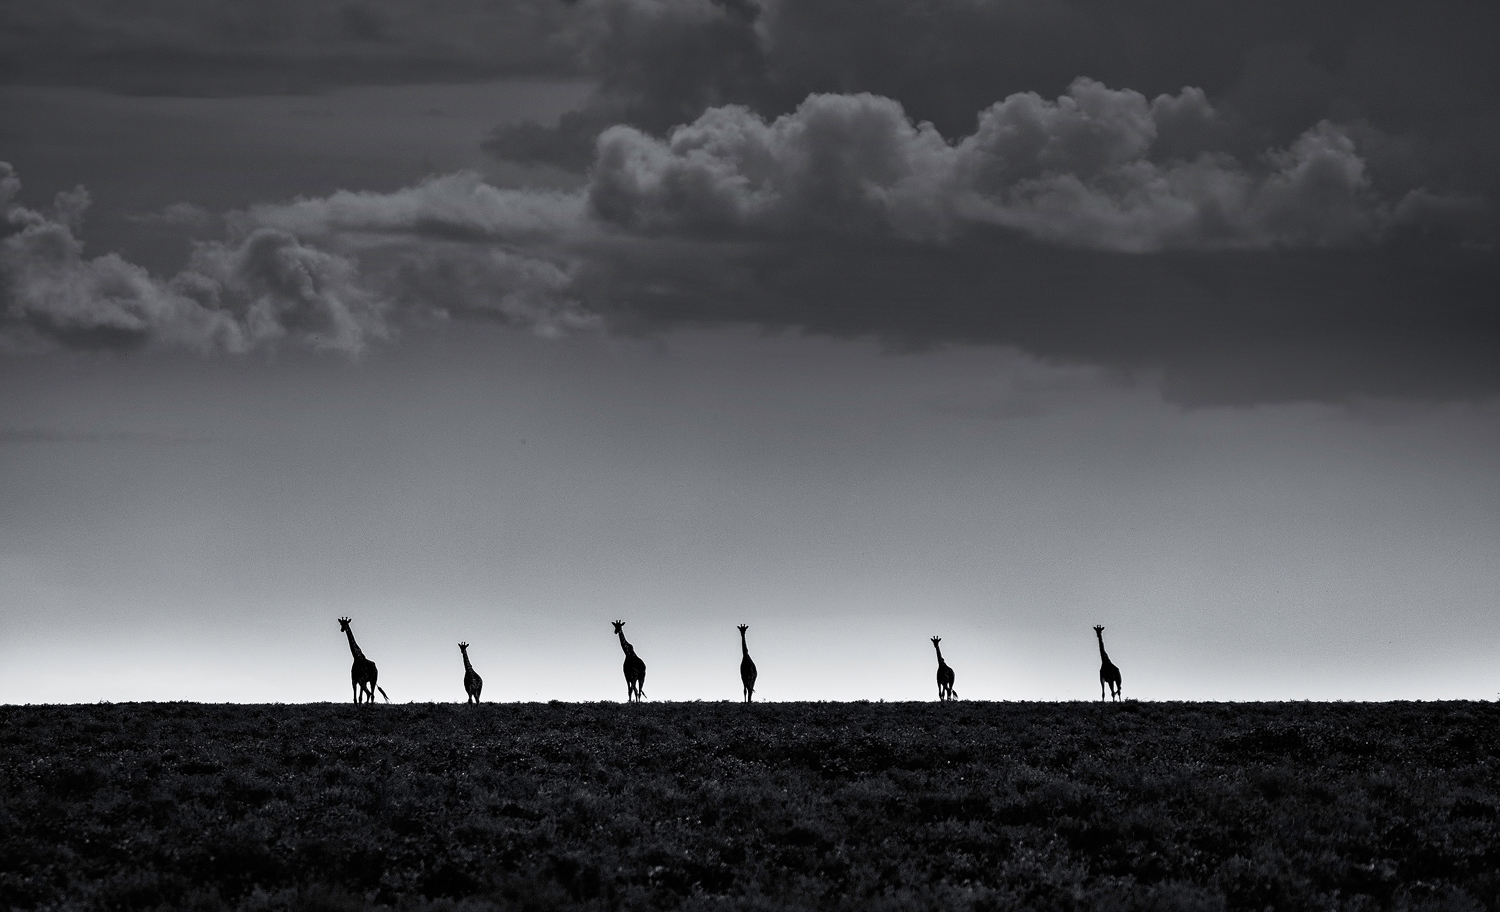 A journey of giraffes pauses in the Serengeti National Park, Tanzania ©Greg Metro